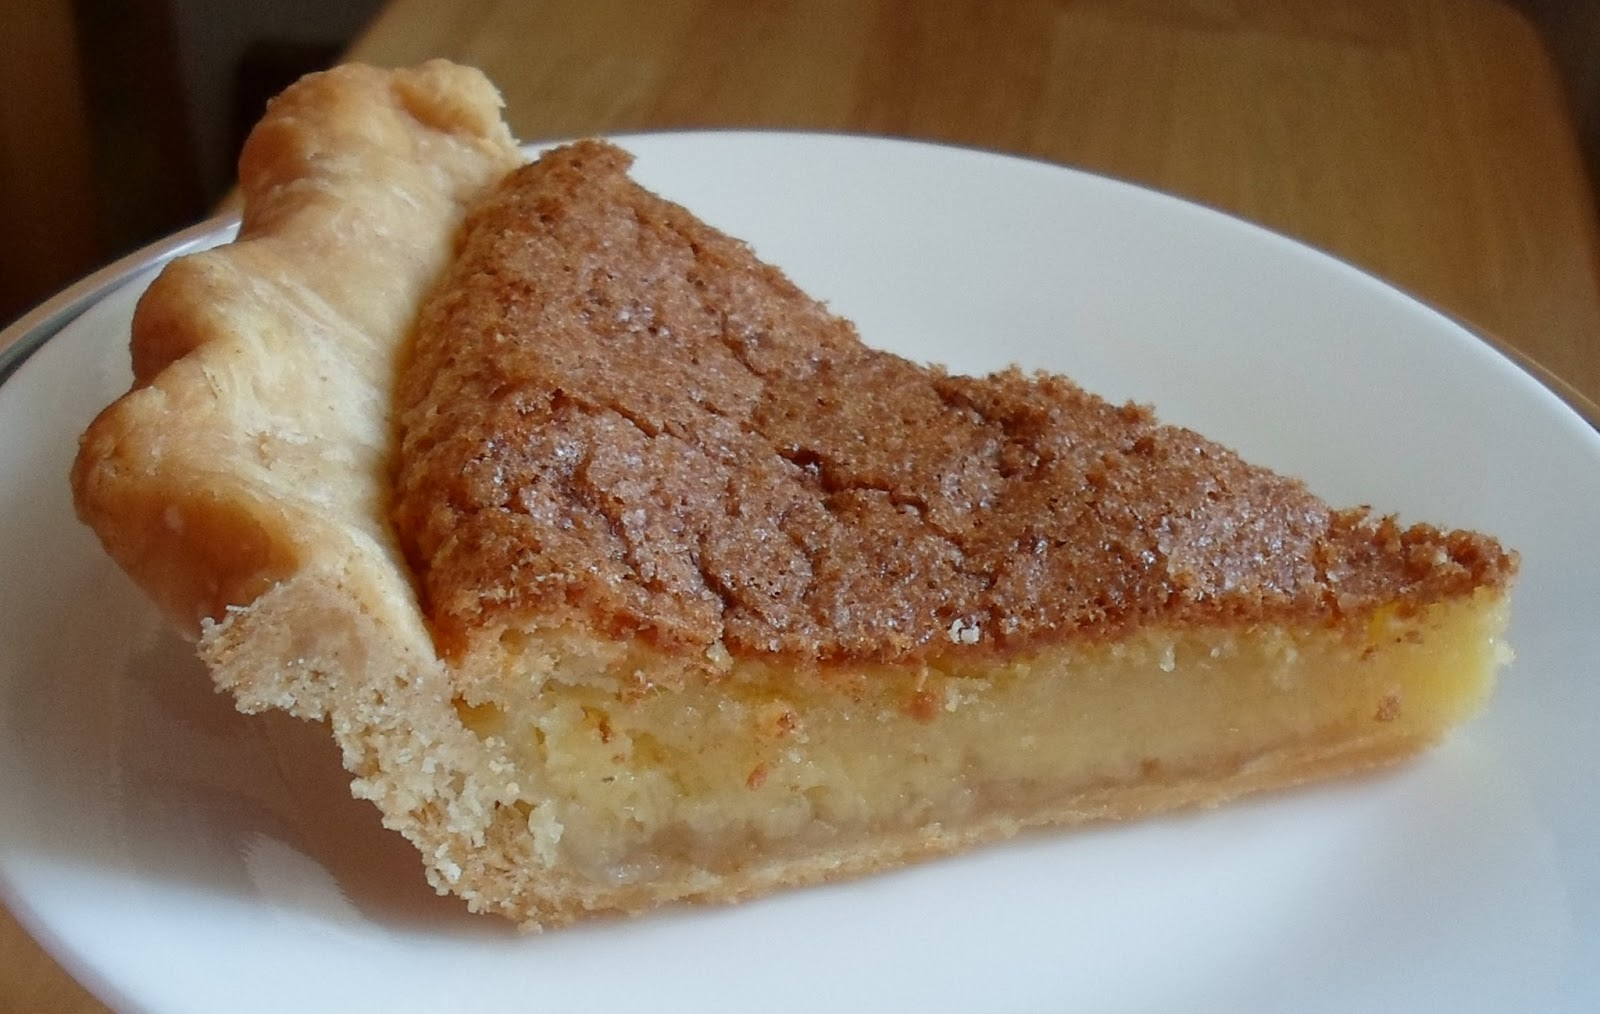 Happier Than A Pig In Mud: Chess Pie for National Pie Day